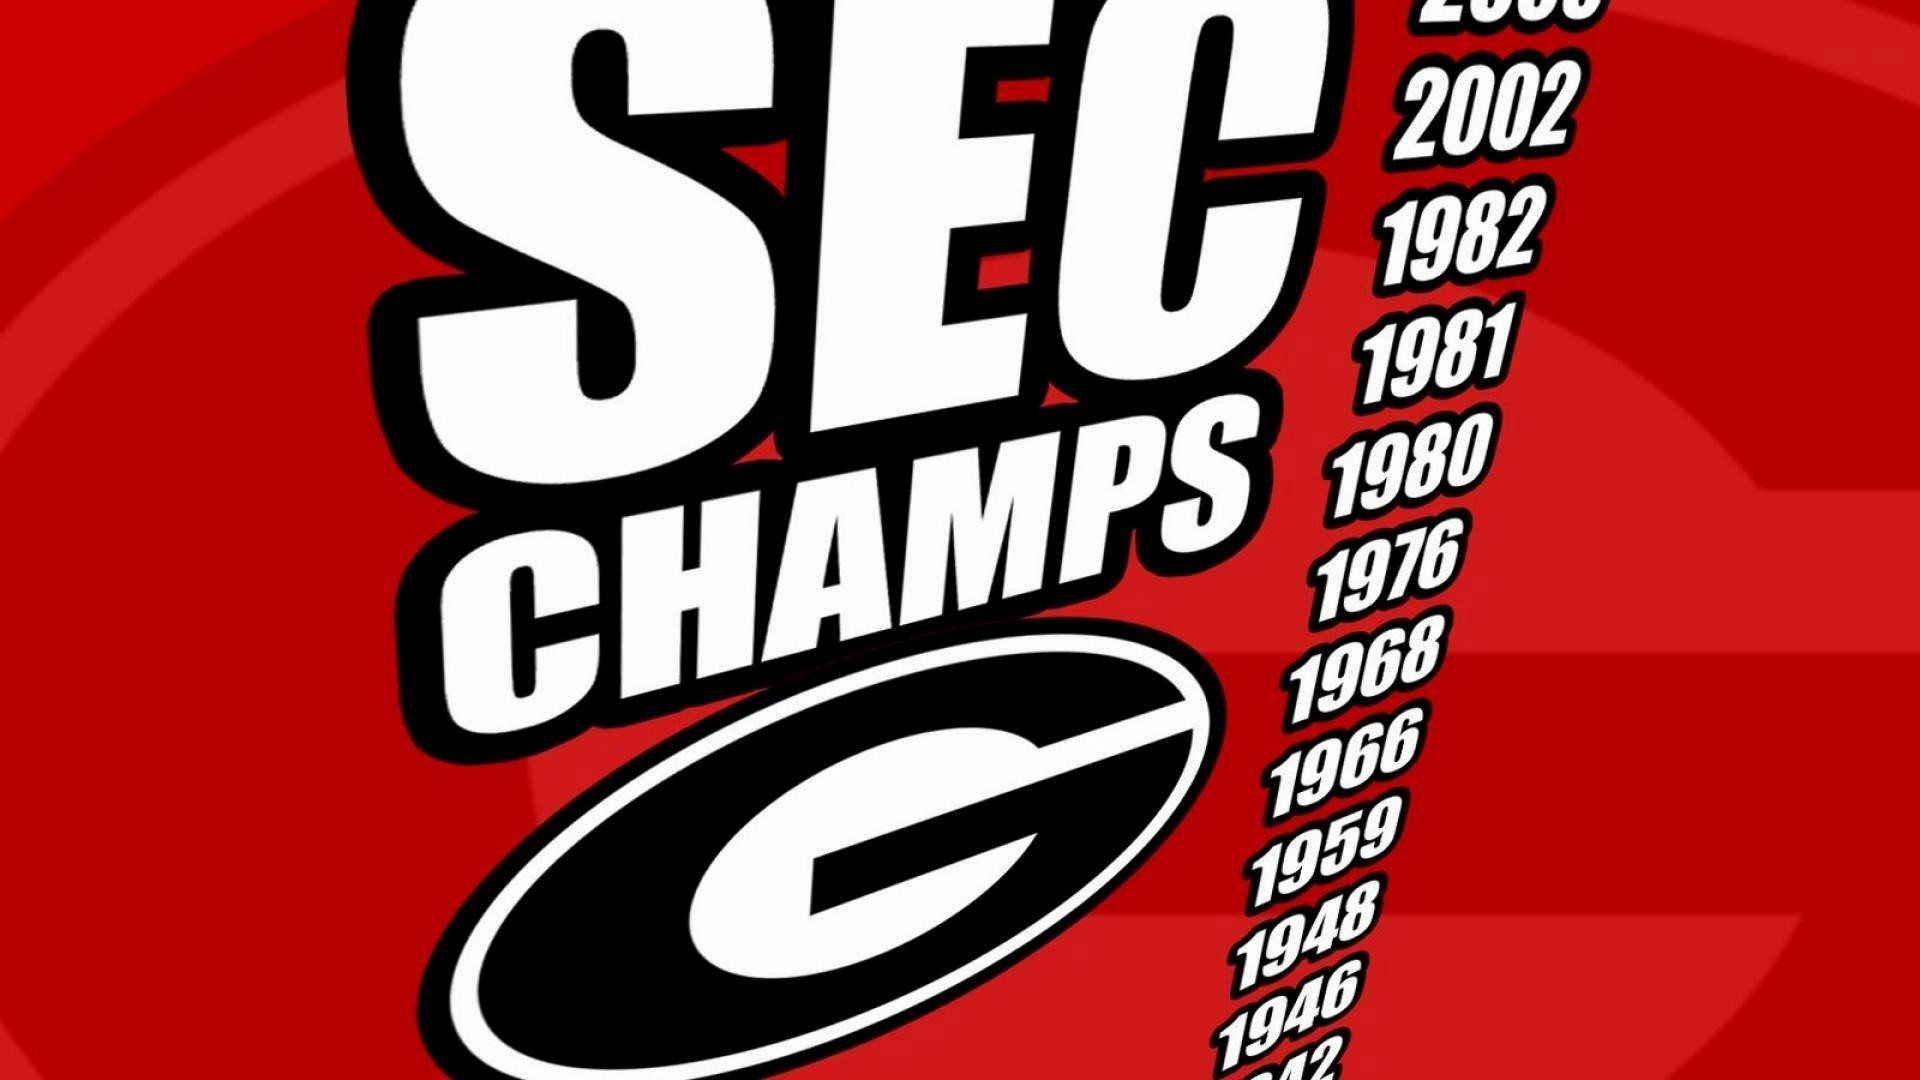 Georgia Bulldogs Wallpapers and Screensavers